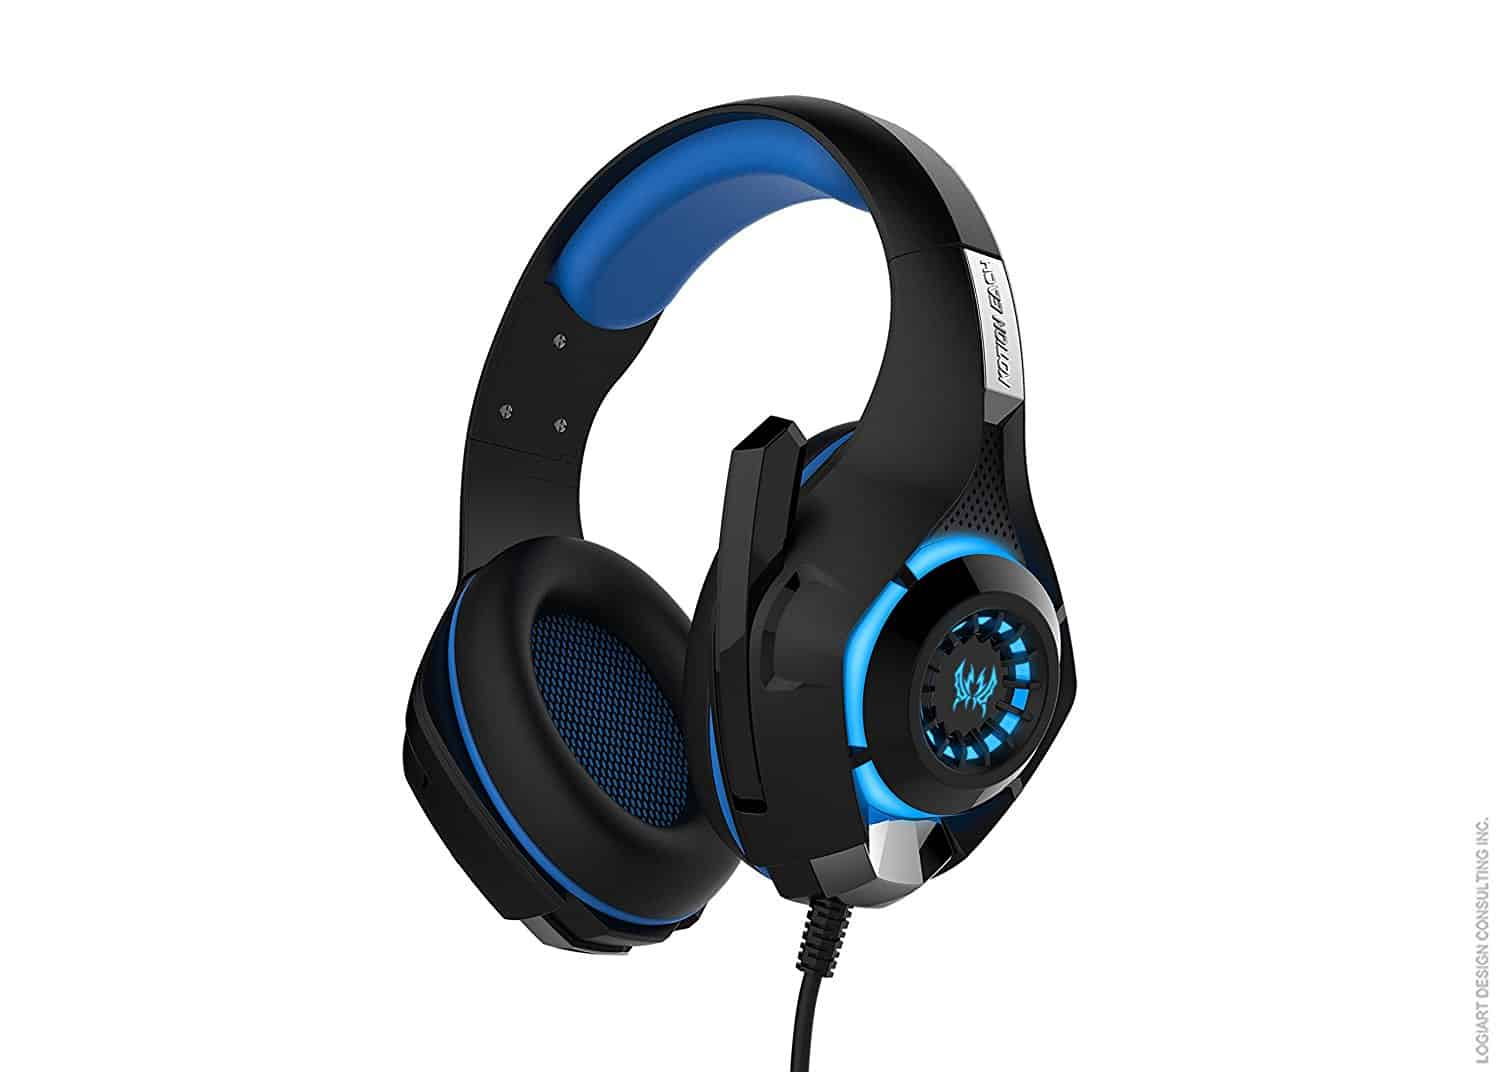 Kotion G4000 Gaming Headphone